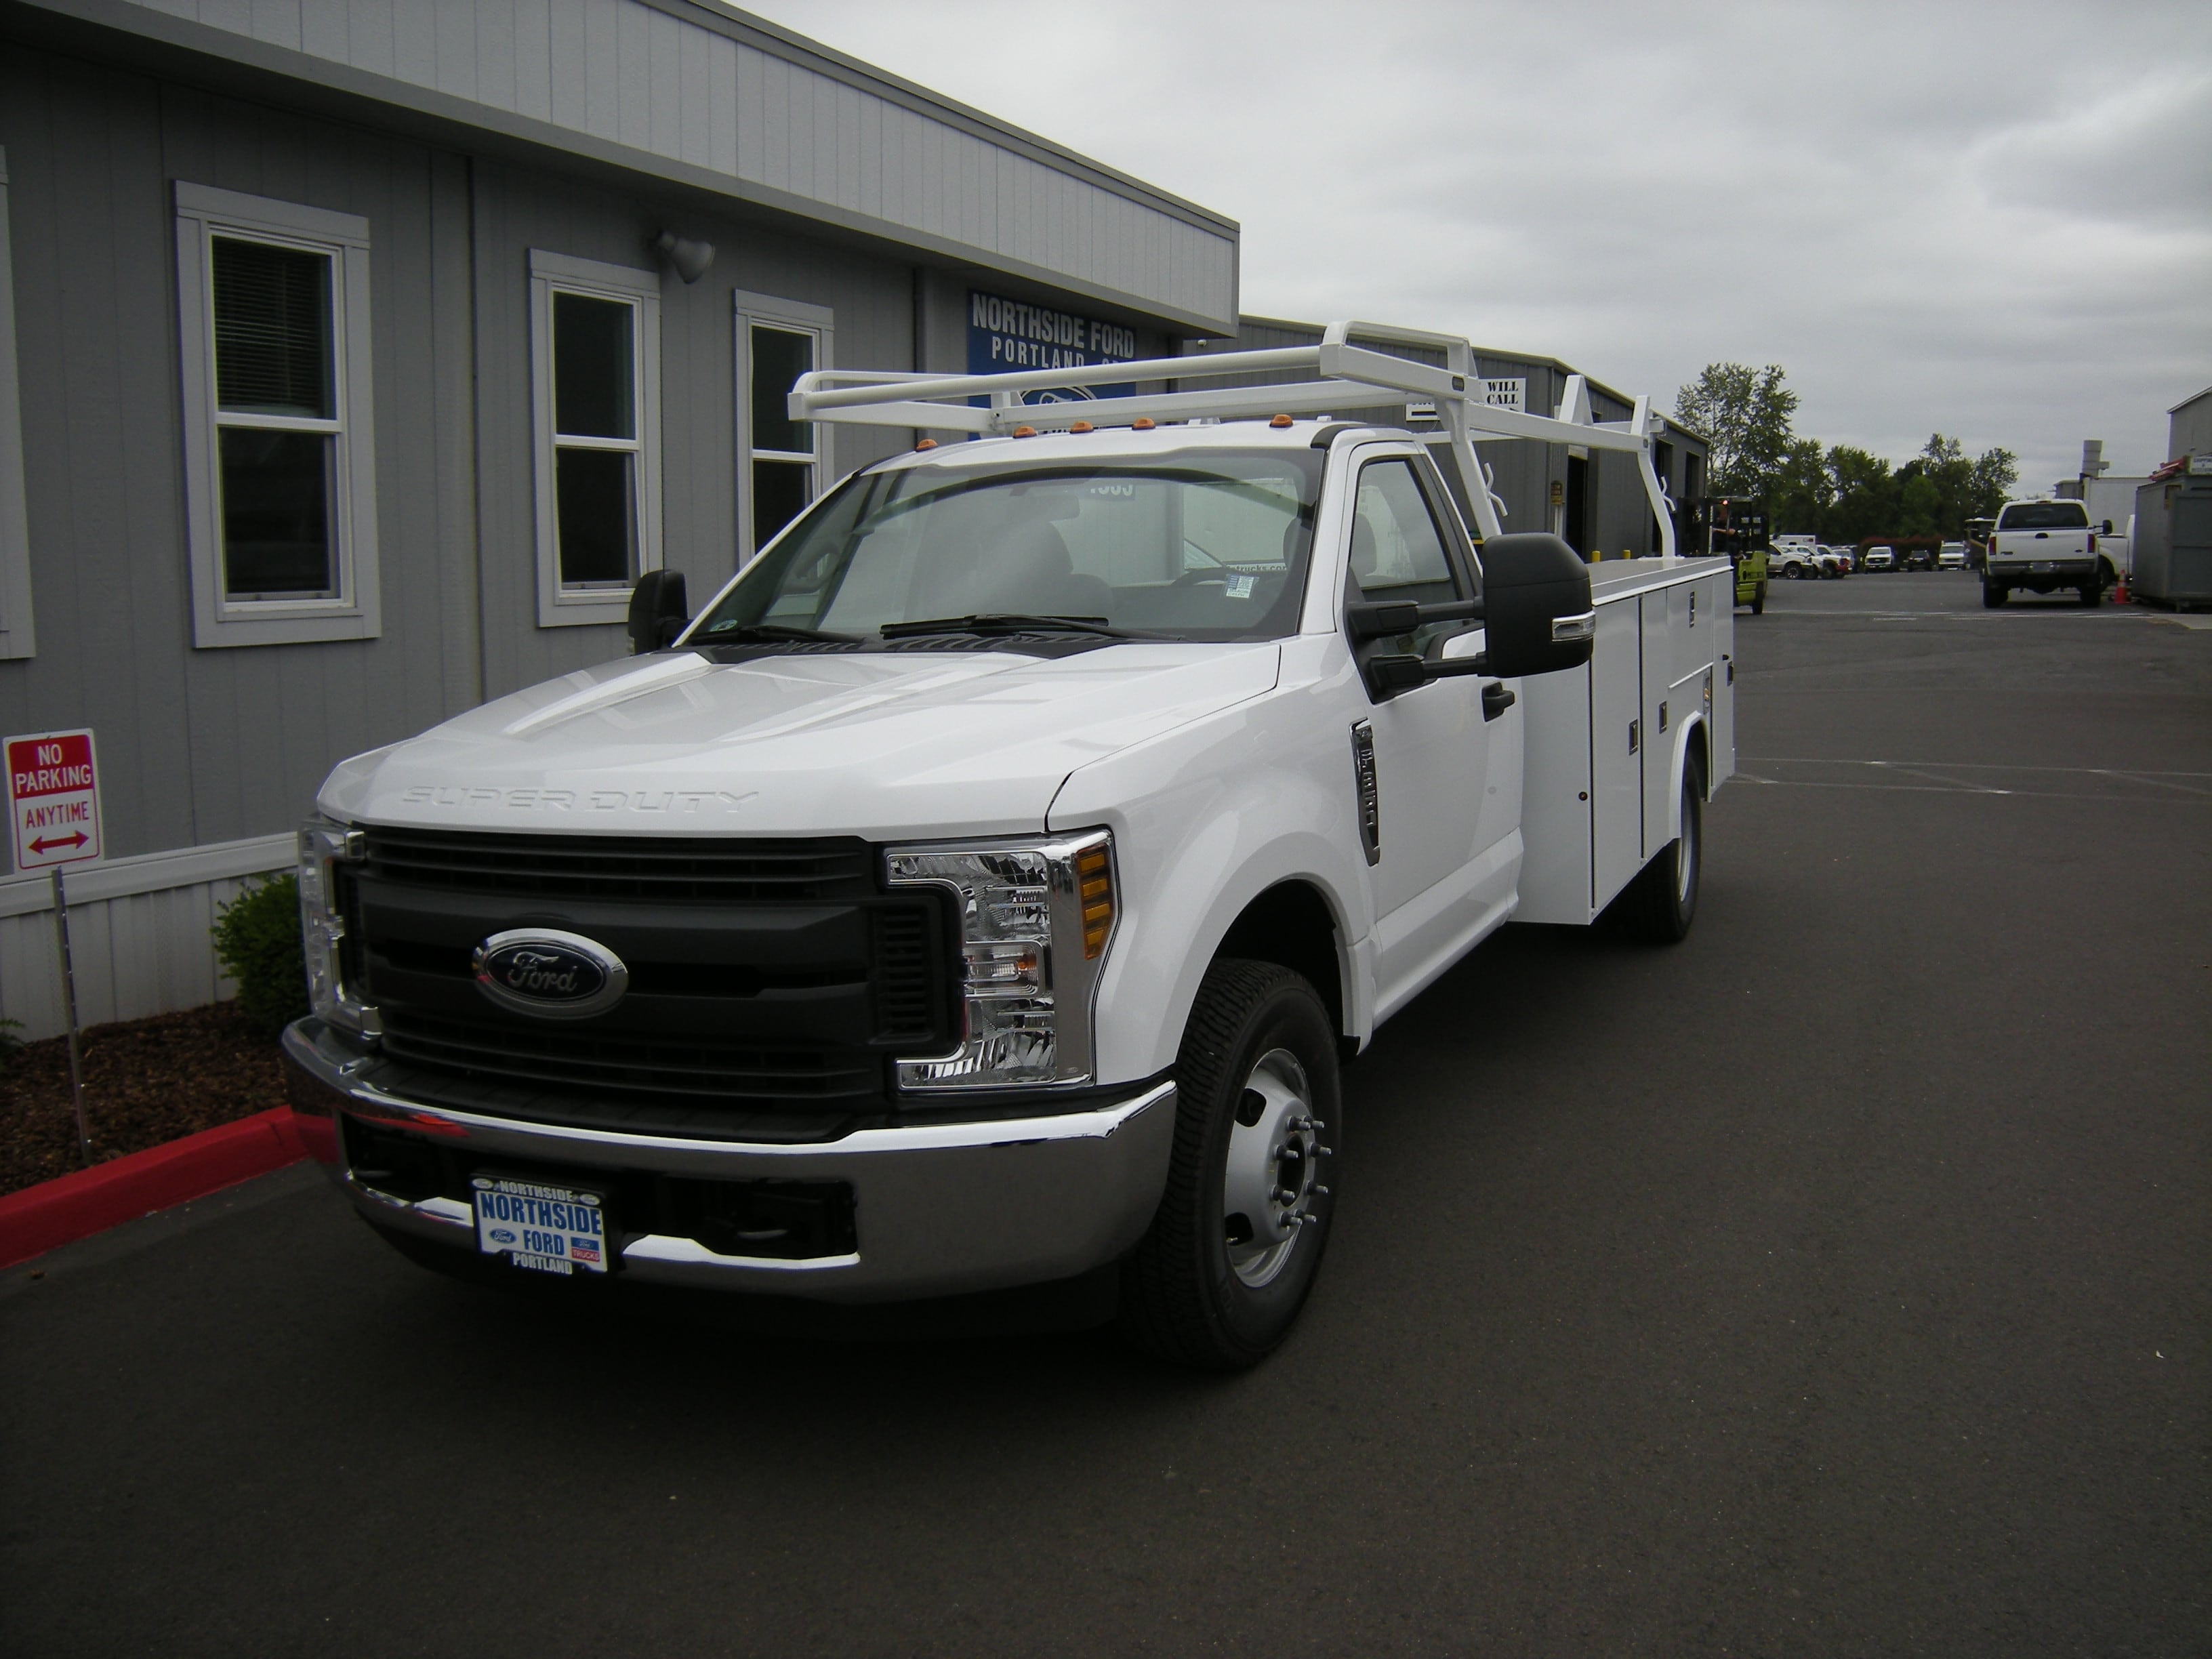 New 2018 Ford F 350 Regular Cab Service Body For Sale In Portland Or Drw 4x2 C85841 Photo